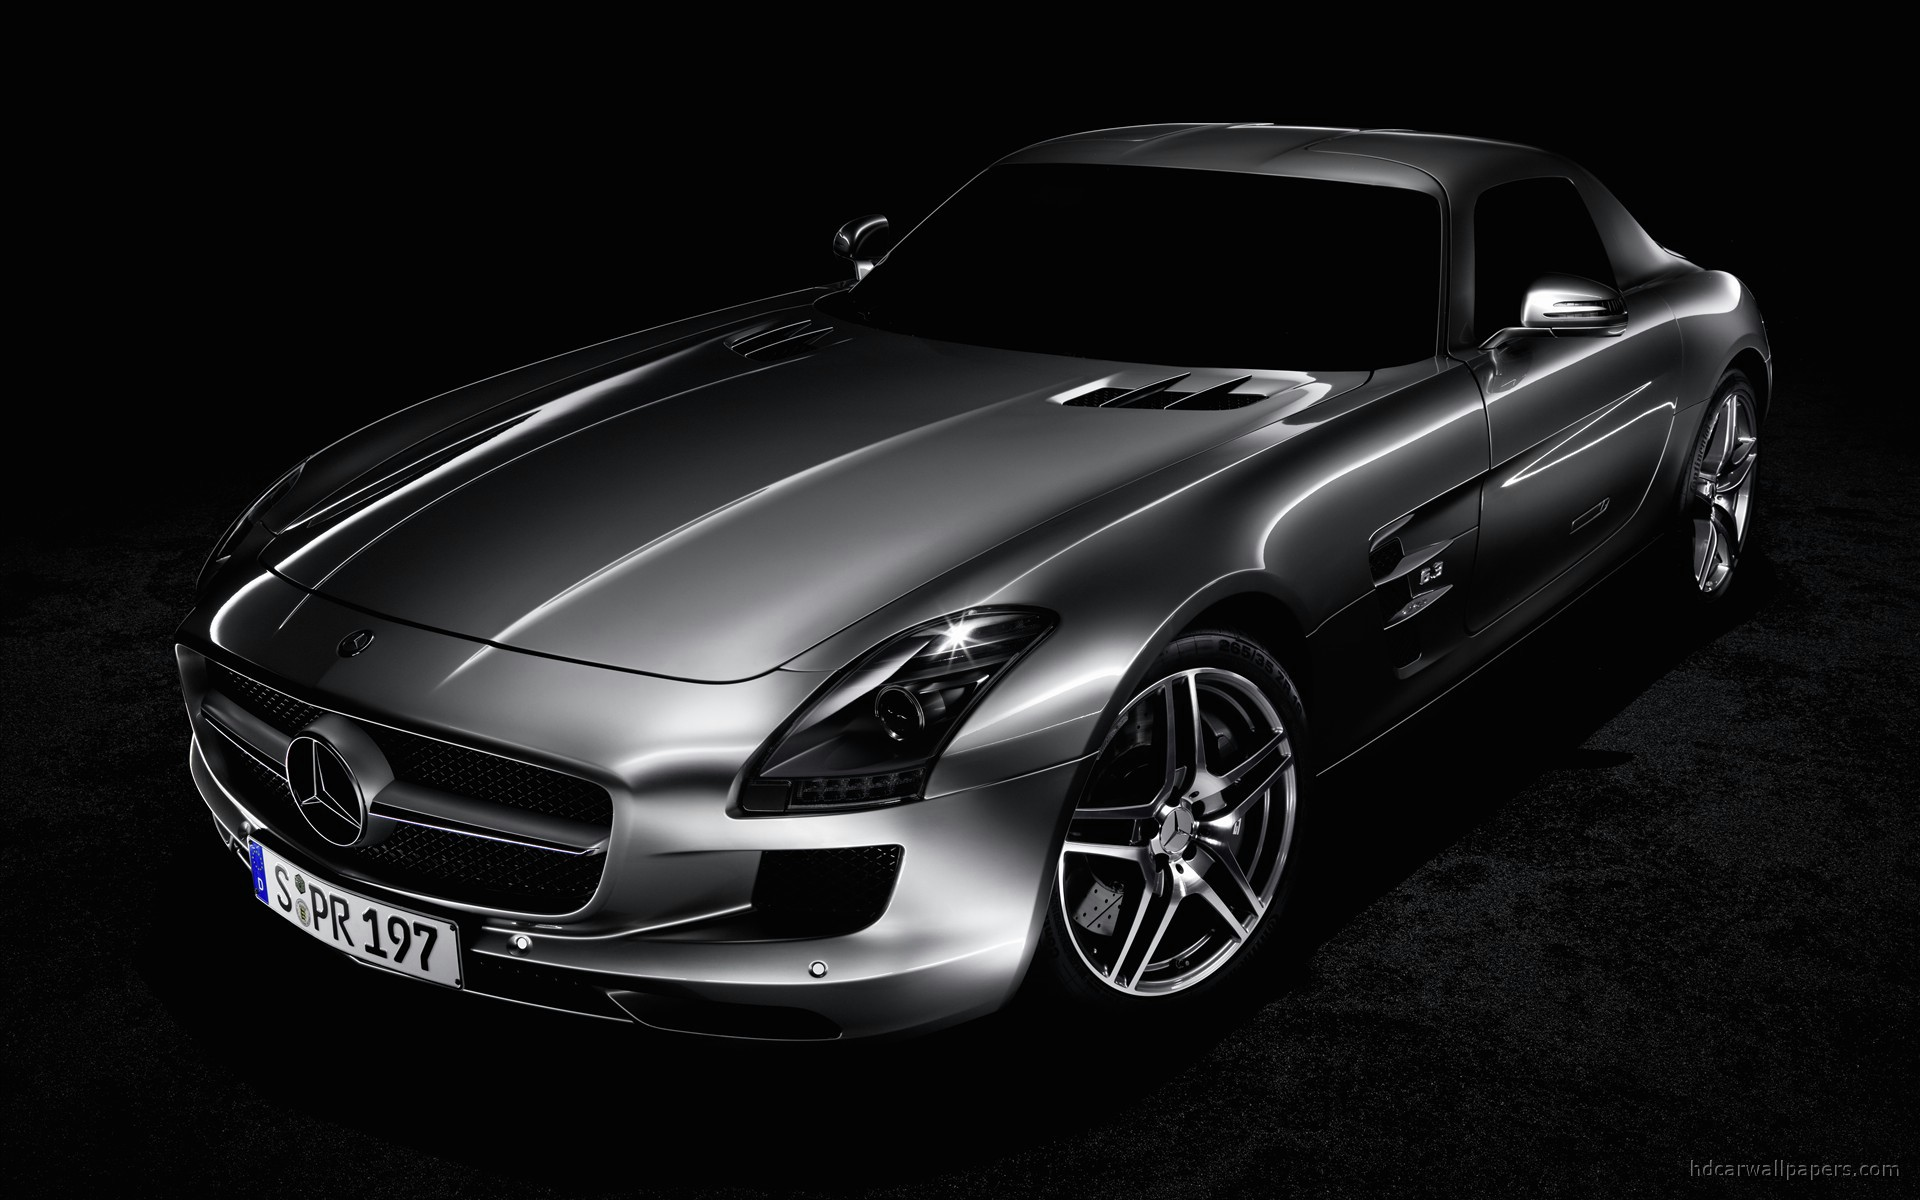 2011 Mercedes Benz SLS AMG 13 400.09 Kb